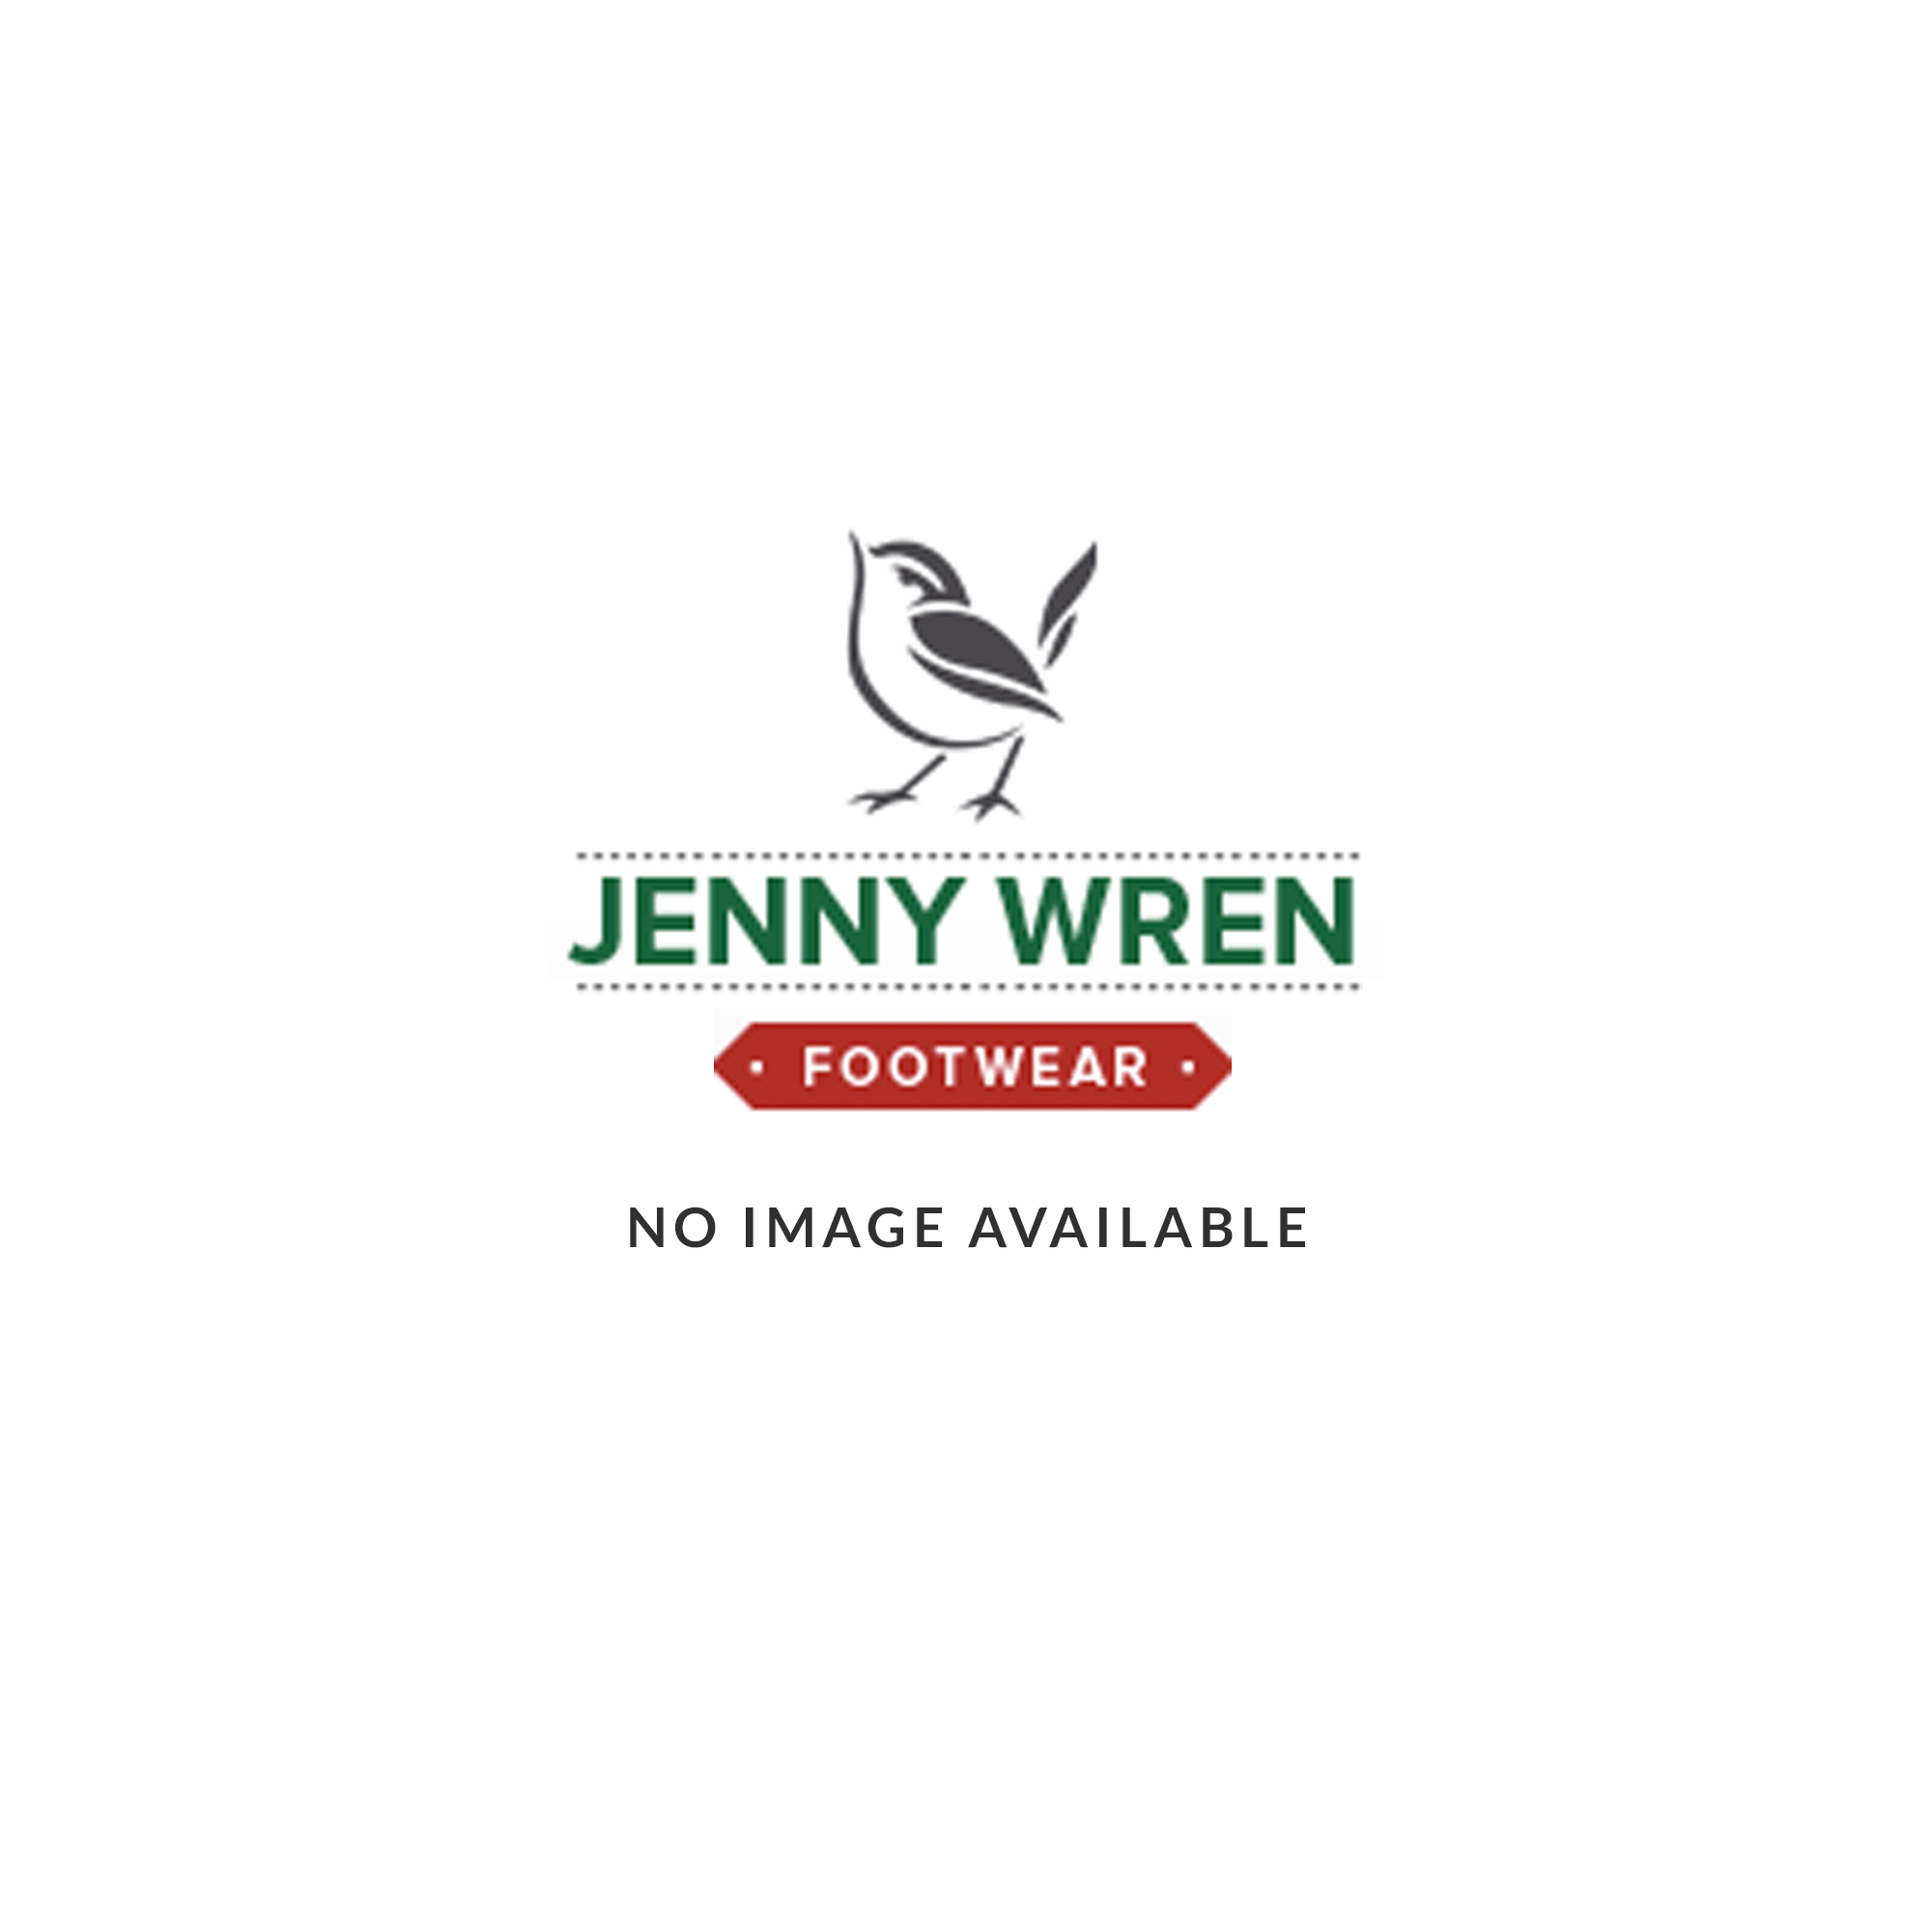 ab8edc9d90e Koi Footwear Stretchy High Heel Angular Tall Over Knee Boots ...